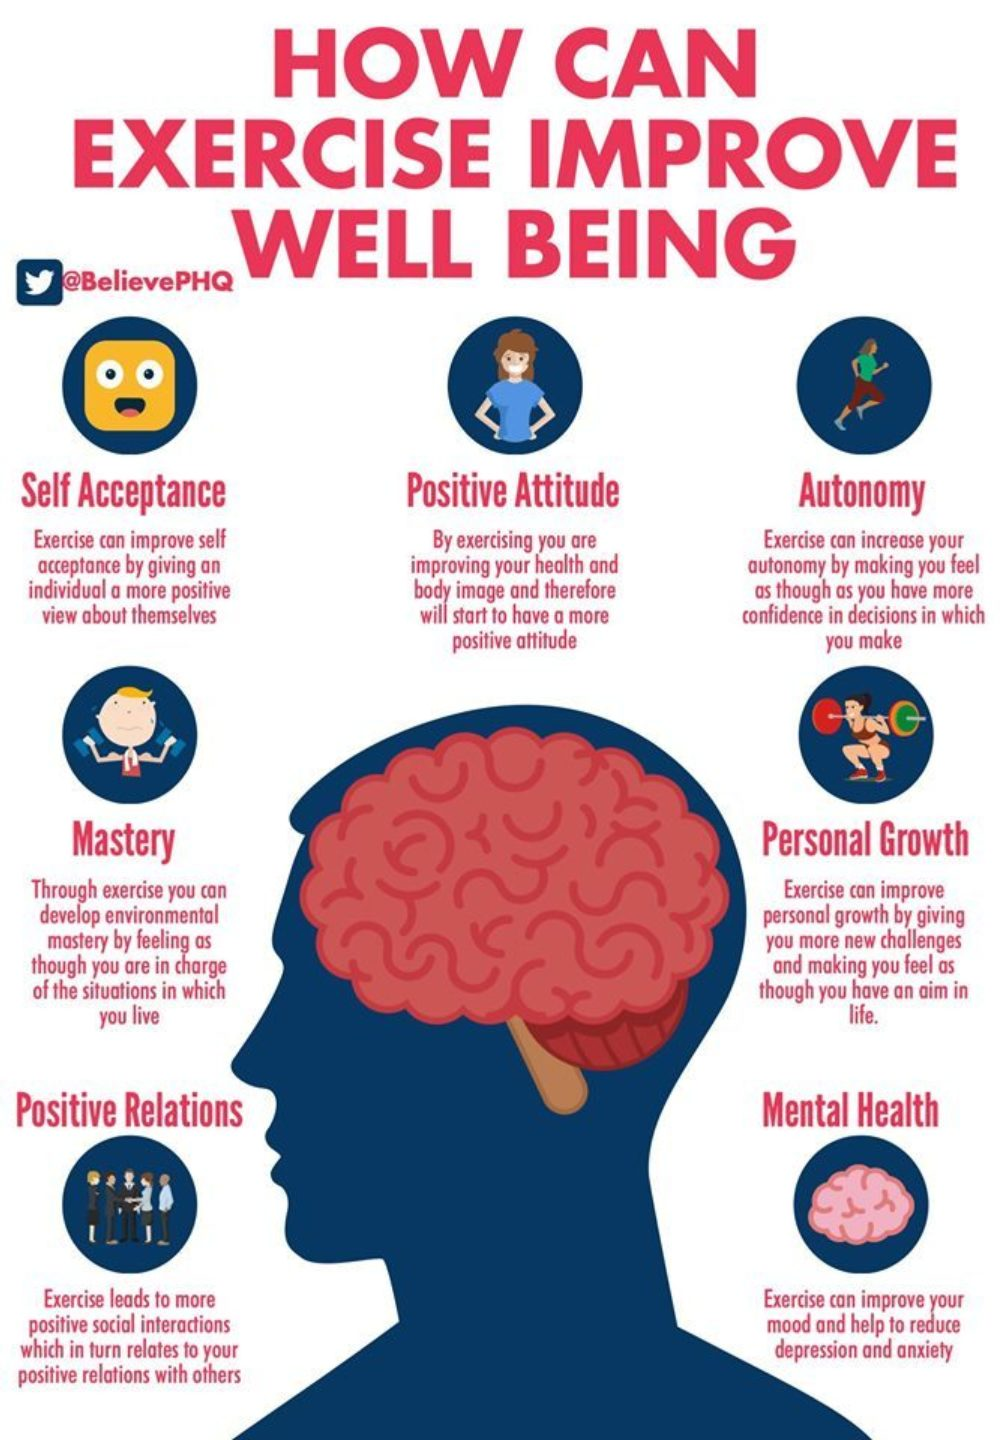 How-can-excerise-improve-wellbeing.jpg?mtime=20190611154808#asset:12712:midWidth